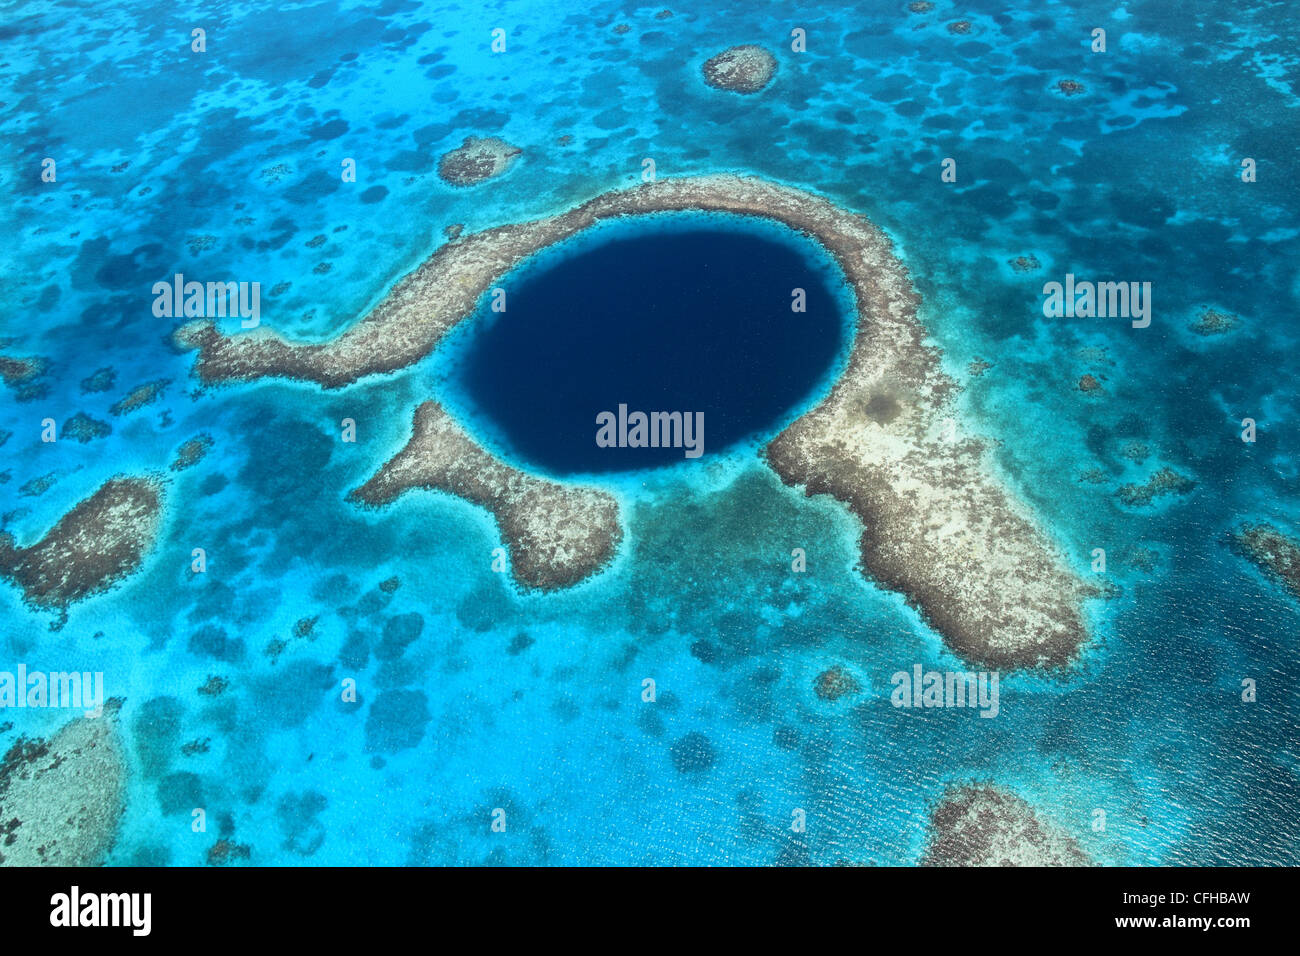 Great Blue Hole, un crollato grotta sottomarina sistema, Lighthouse Reef, il Belize Barrier Reef, Belize, dei Caraibi Immagini Stock